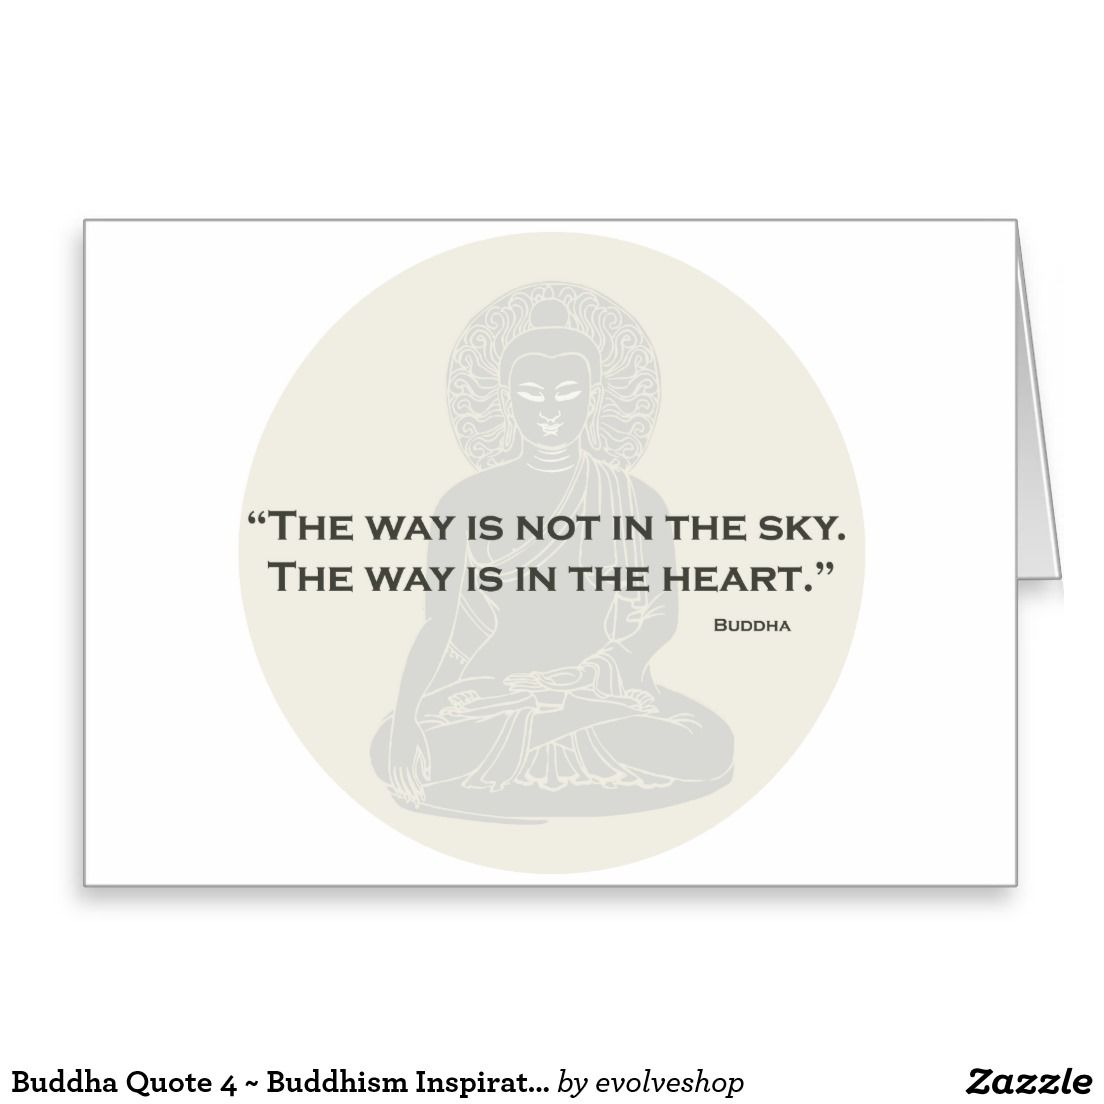 Buddha quote 4 buddhism inspiration sayings card buddha quote buddha quote 4 buddhism inspiration sayings card kristyandbryce Image collections